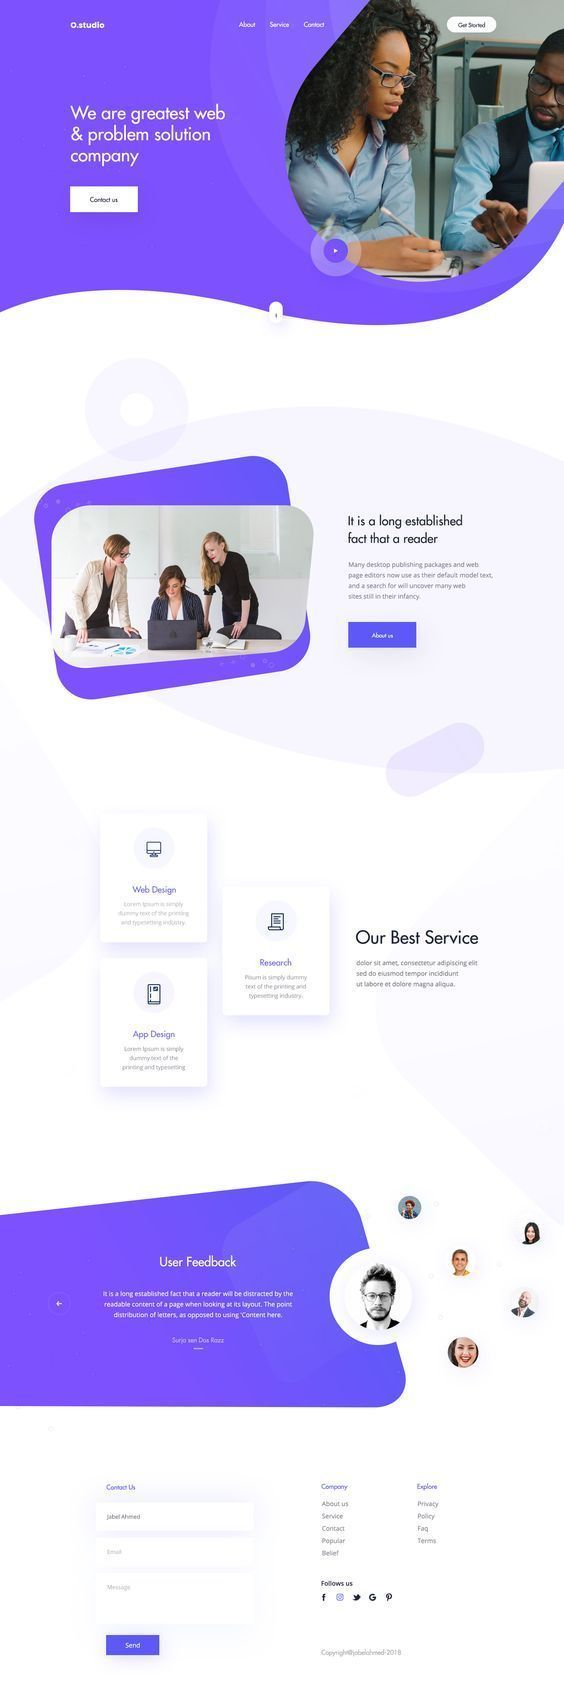 Guide Starting Your Own Website Design Company How To Freelance Find Customers And Grow Your Bu In 2020 Web Design Marketing Website Design Company Web Design Tips